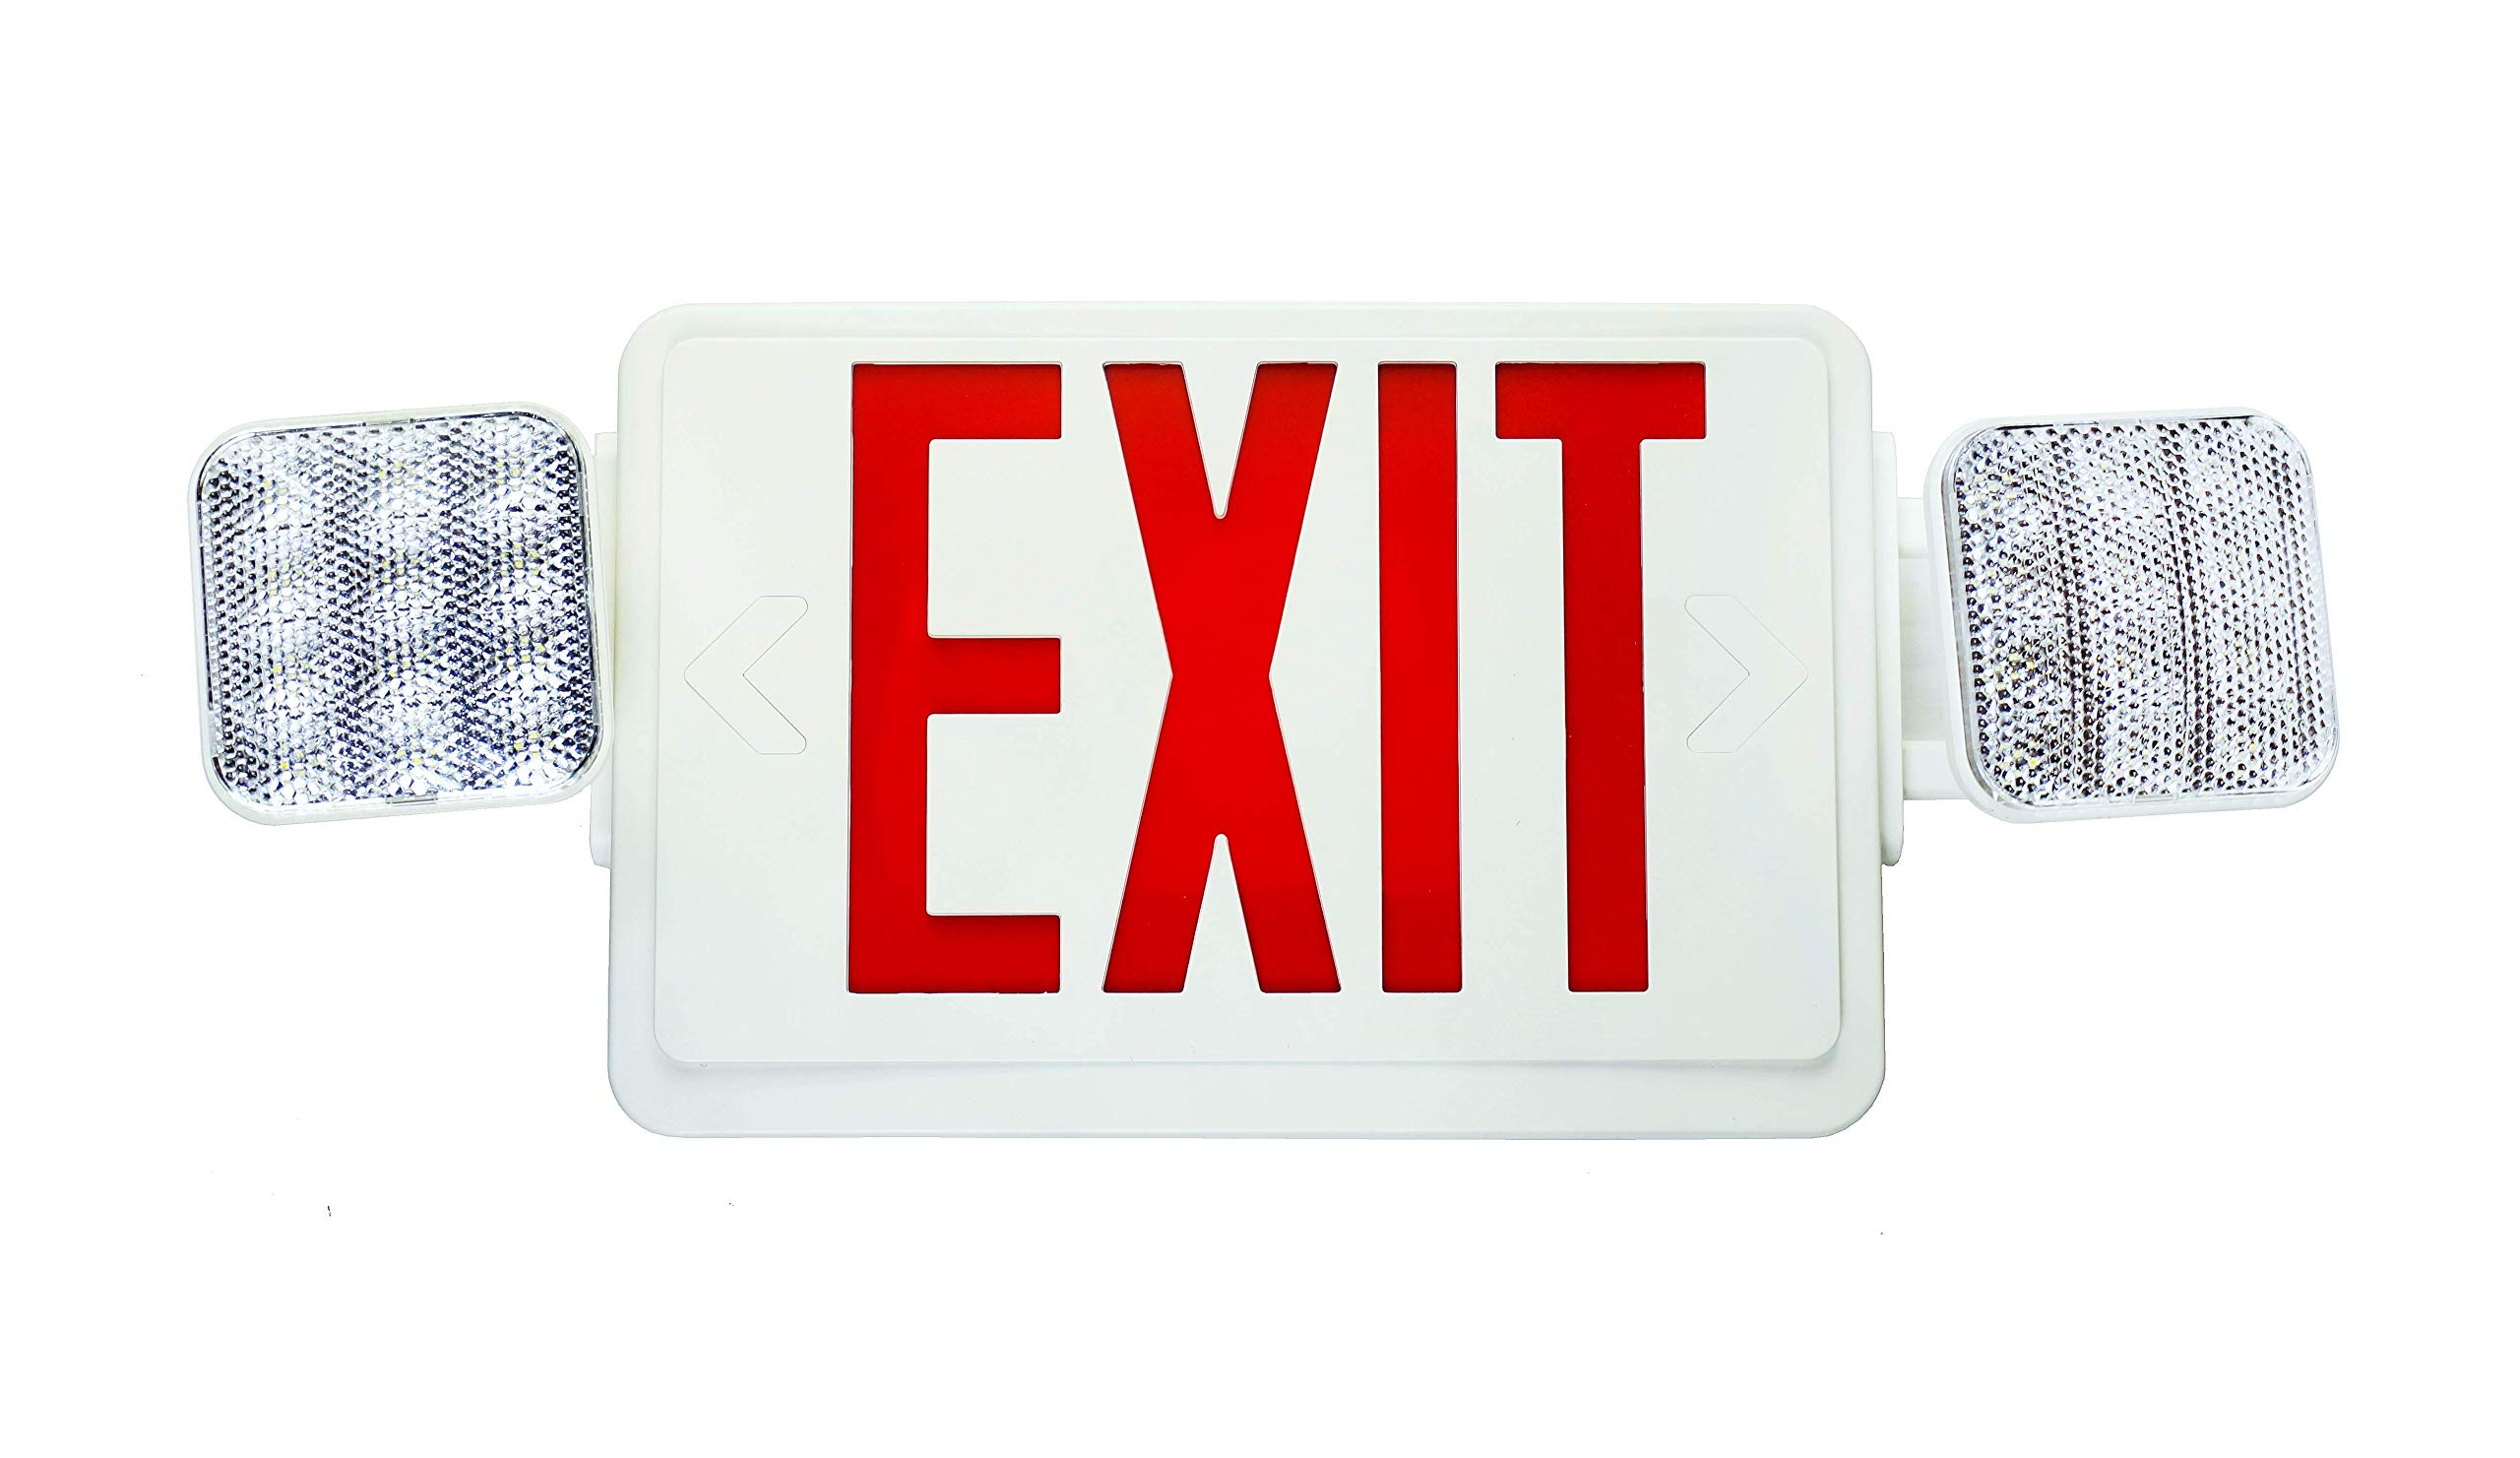 NICOR Lighting Remote Capable LED Emergency Exit Sign with Dual Adjustable LED Heads, White with Red Lettering (ECL1-10-UNV-WH-R2R) by NICOR Lighting (Image #1)